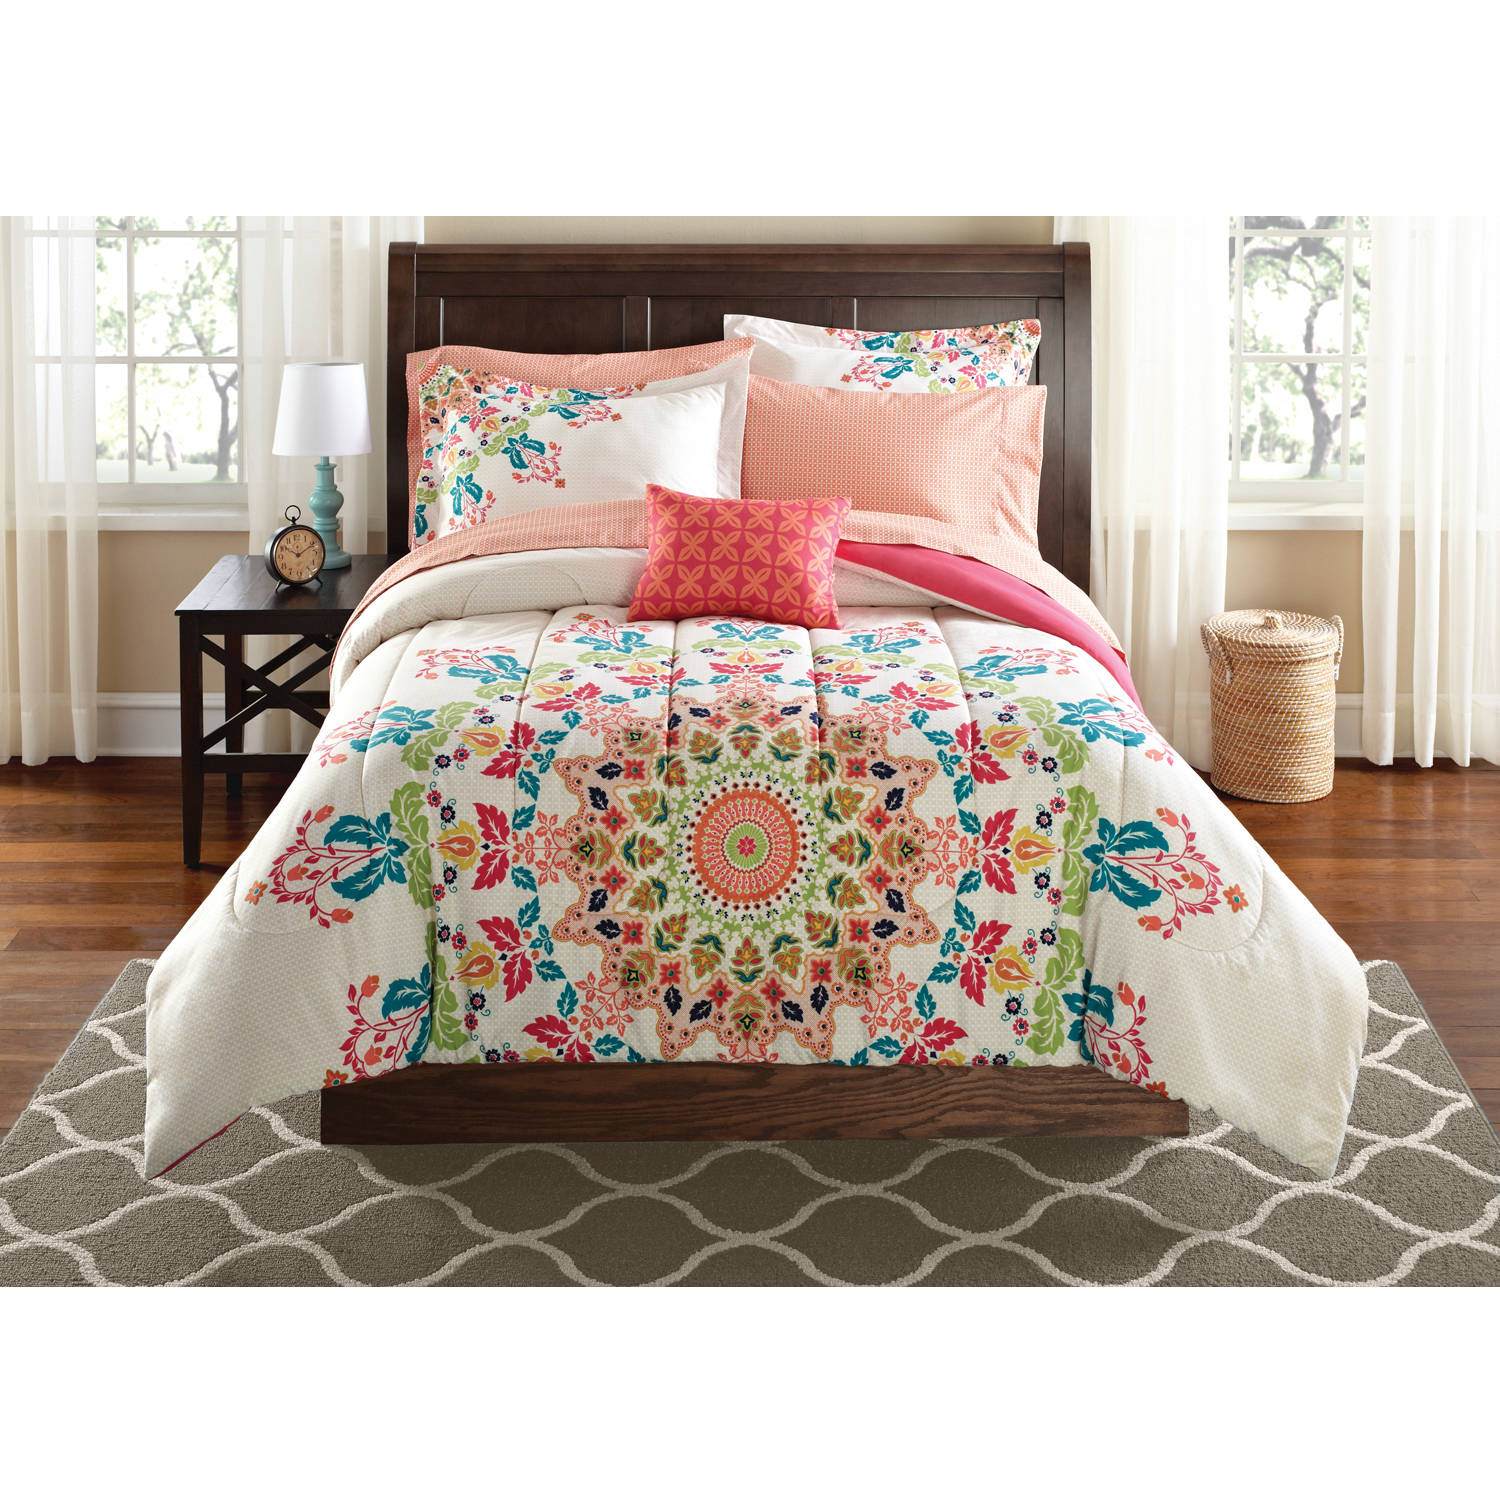 Blue bedspreads and comforters - Mainstays Medallion Bed In A Bag Bedding Set